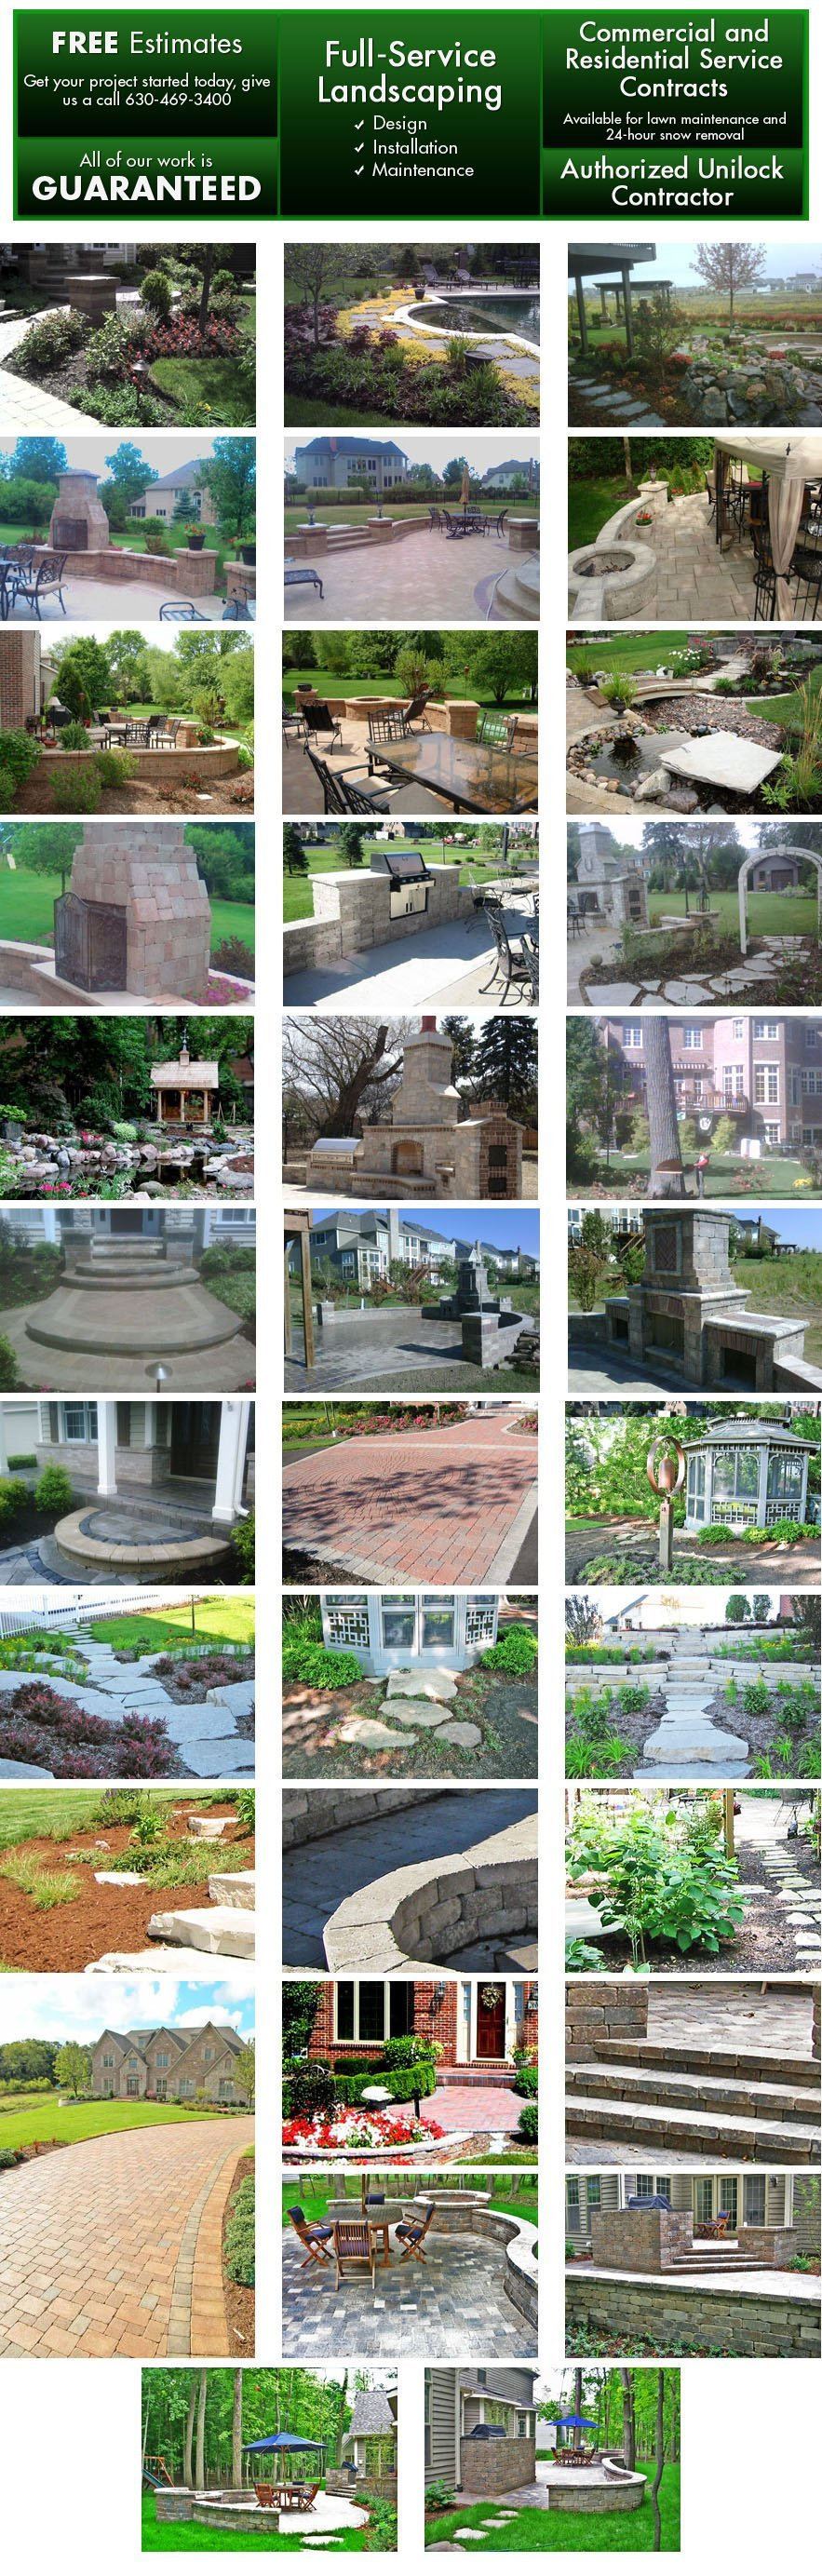 Glen Ellyn, IL - Green Planet Inc - Full-service Landscaping, Hardscaping, Brick Paving, and 24-hour Snow Removal Services